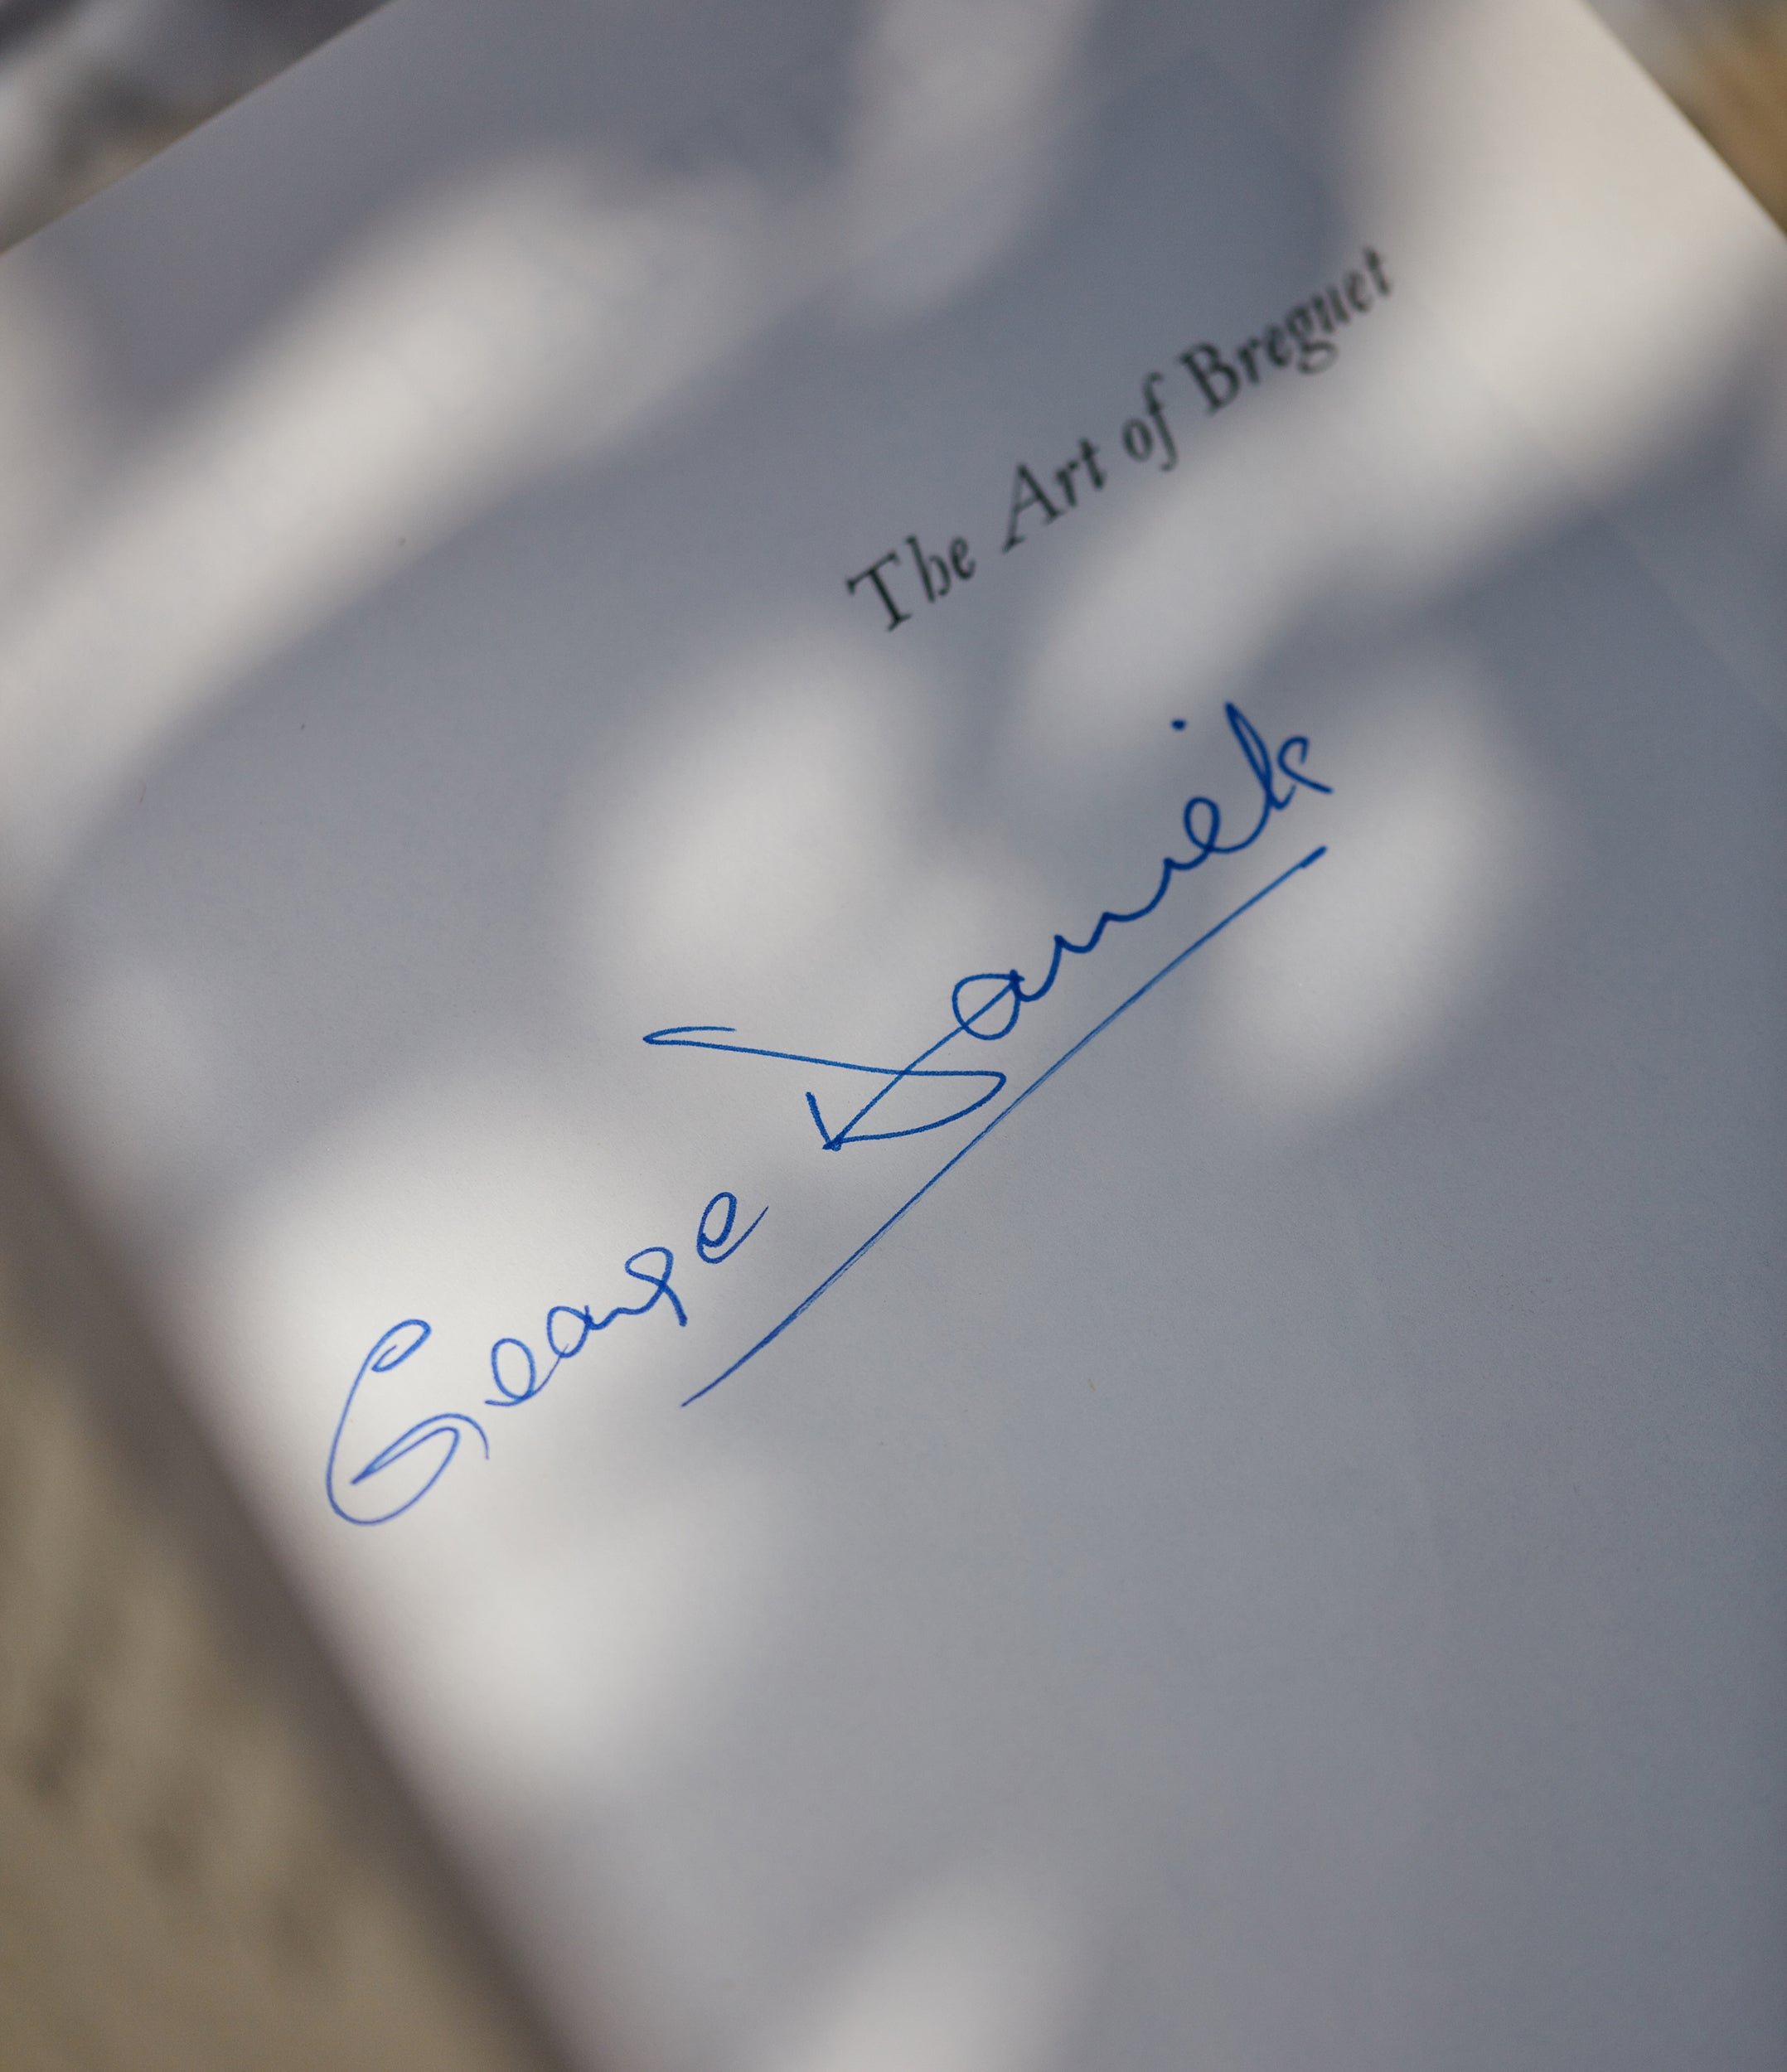 signed rare edition The Art of Breguet book by Dr. George Daniels Specialy-bound First Edition book signed and gifted by the author at A Collected Man London